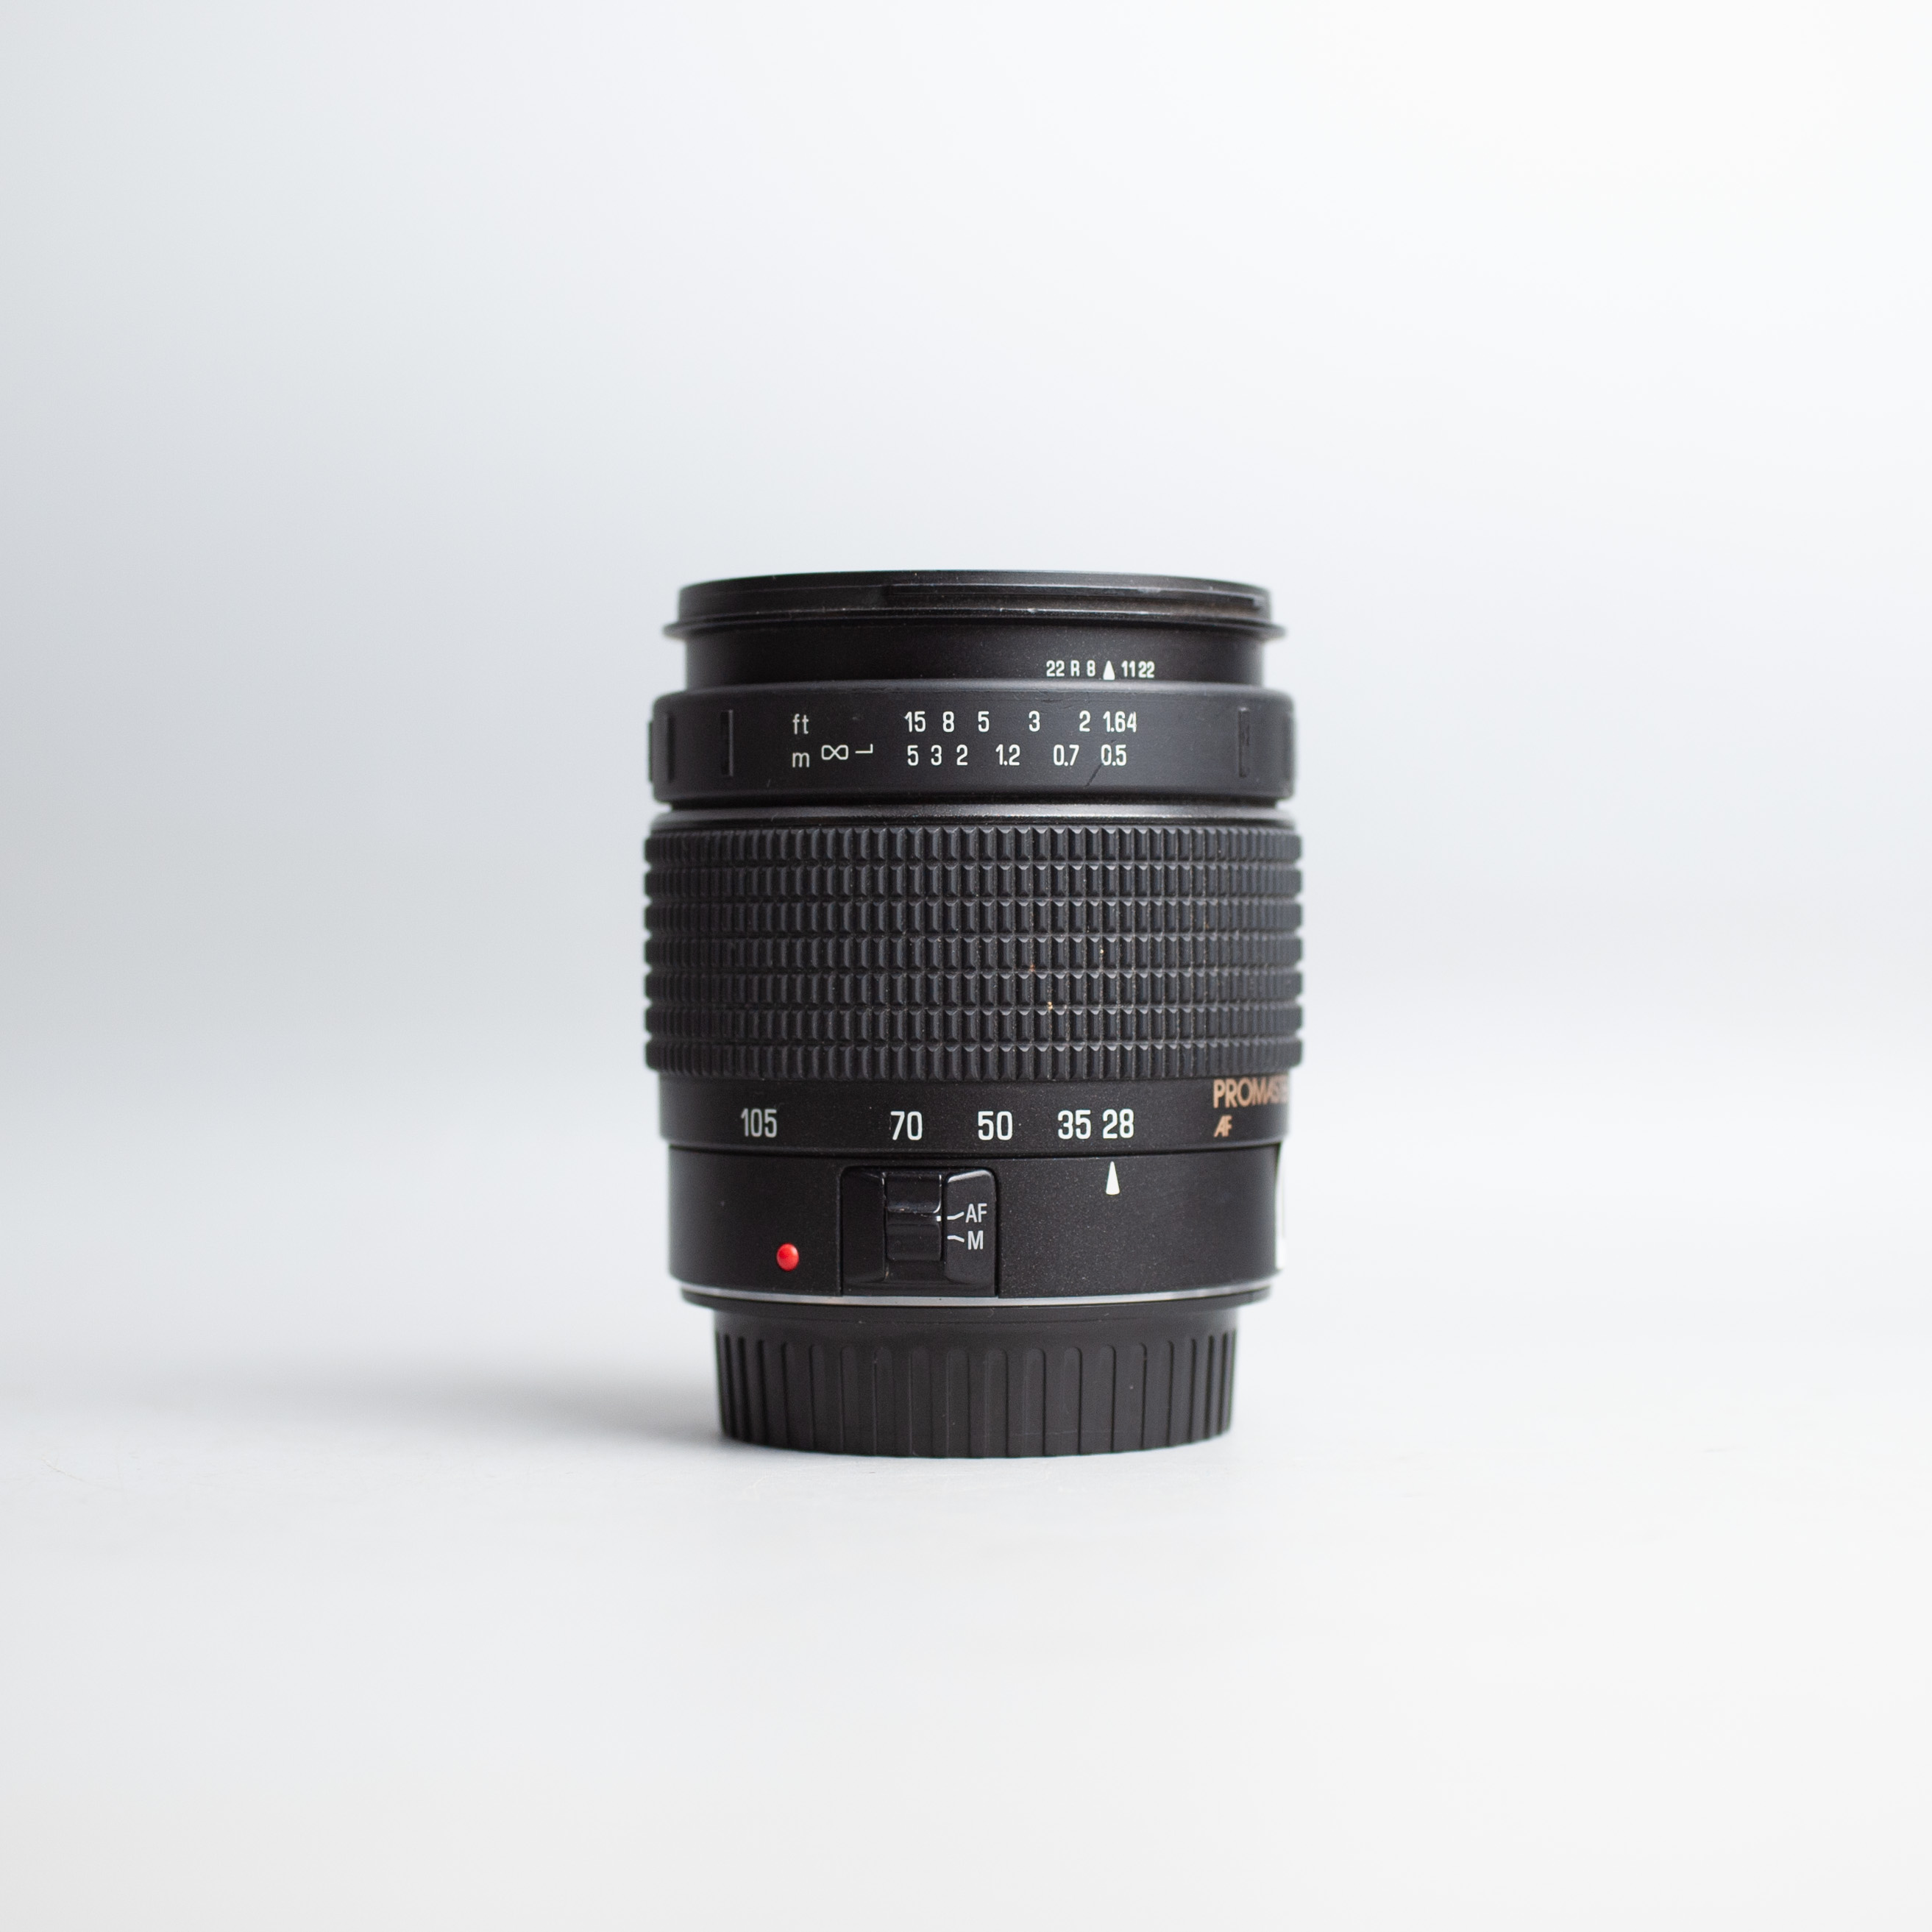 promaster-28-105mm-f4-5-6-af-if-canon-promaster-tamron-28-105-4-5-6-17853